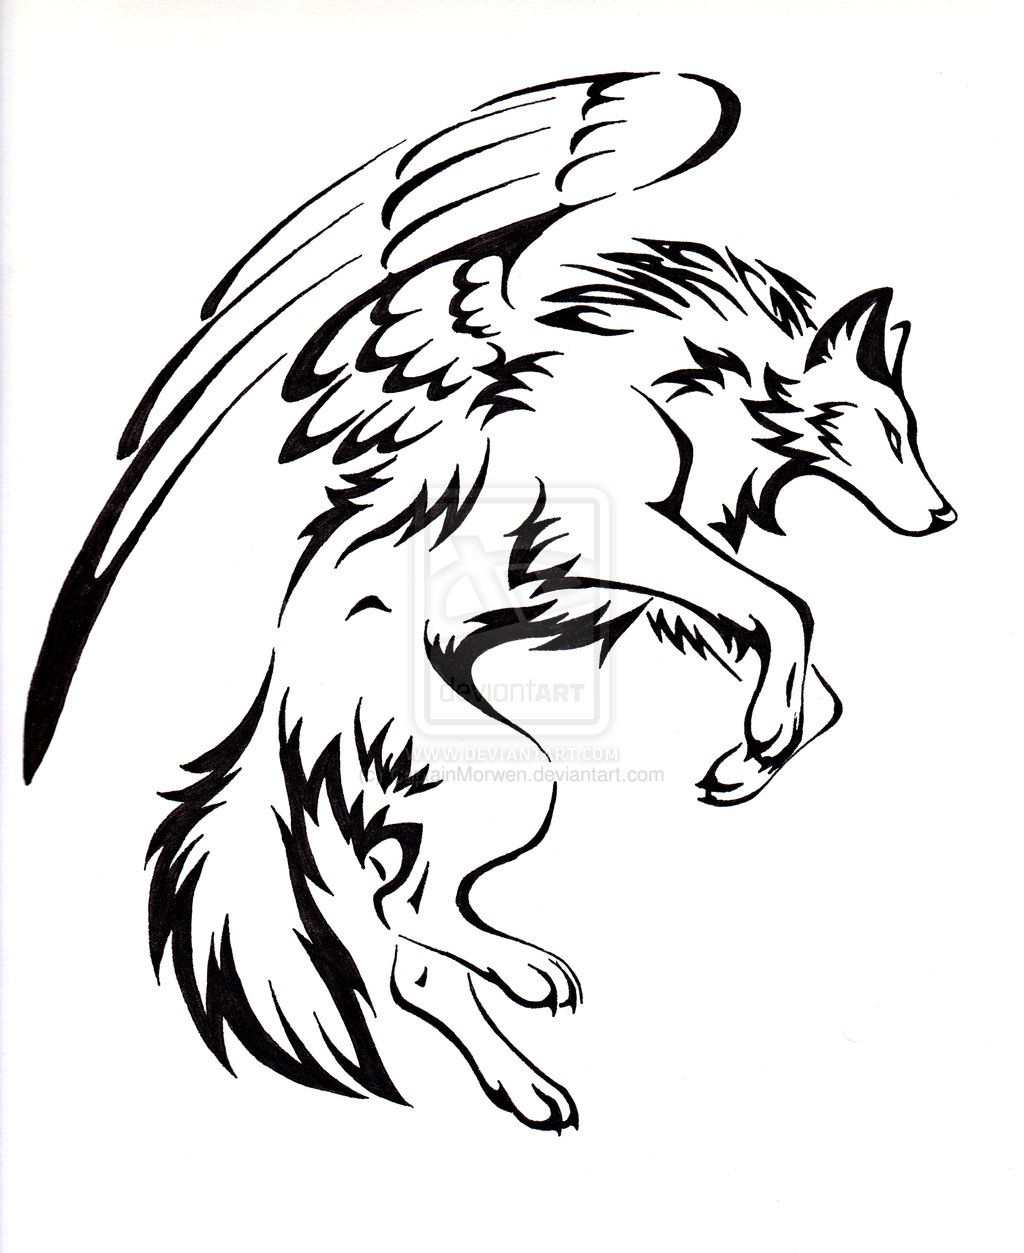 Courage Winged Wolf Tattoo By CaptainMorwendeviantartcom On